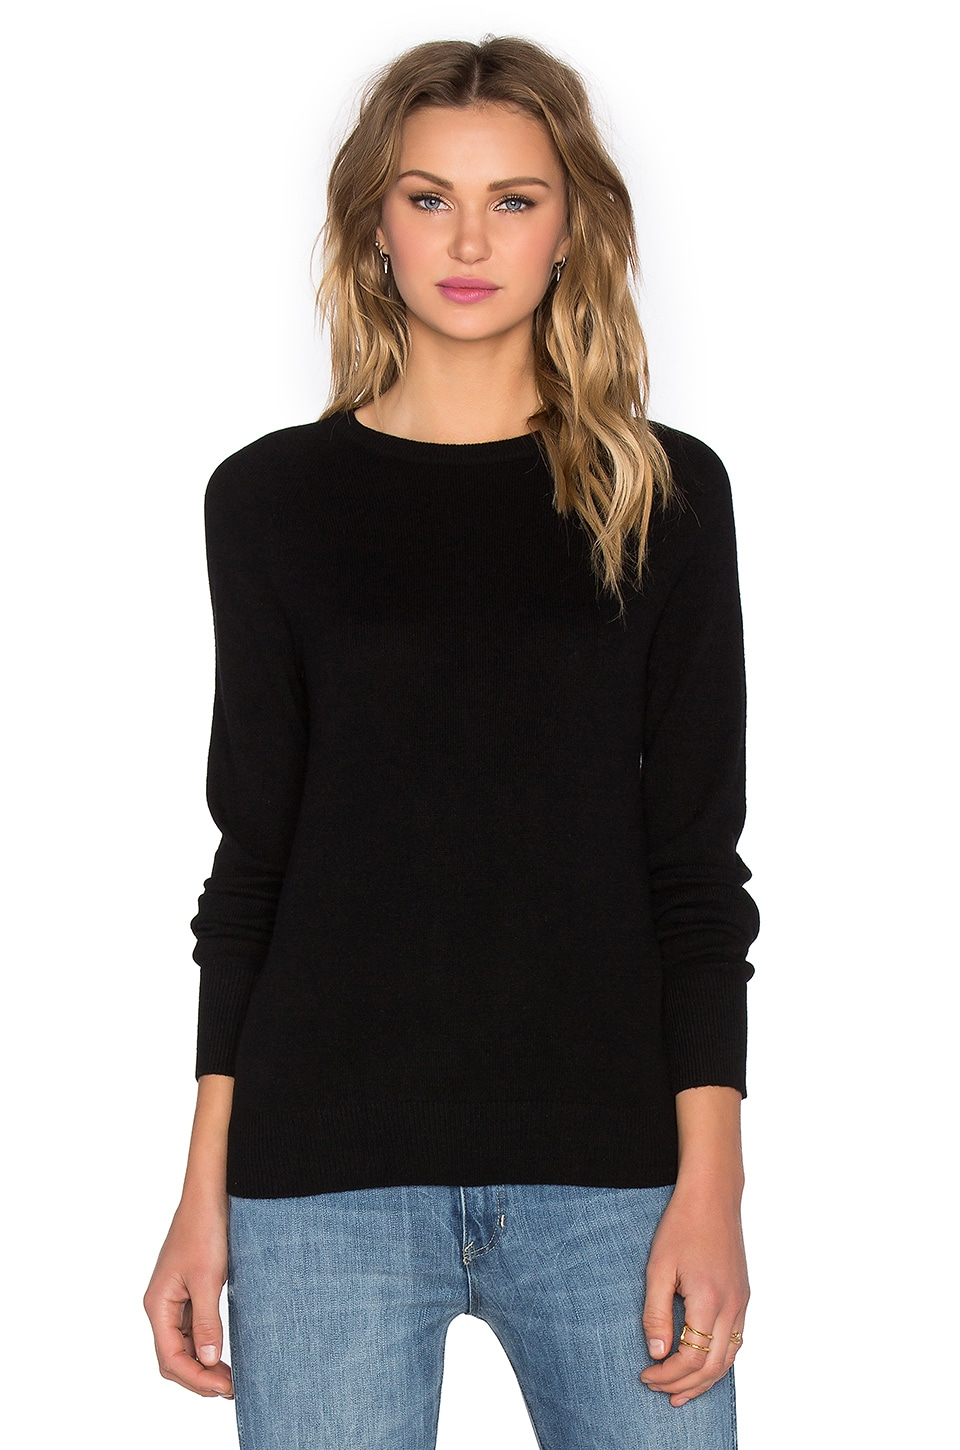 Equipment Sloane Crew Sweater in Black